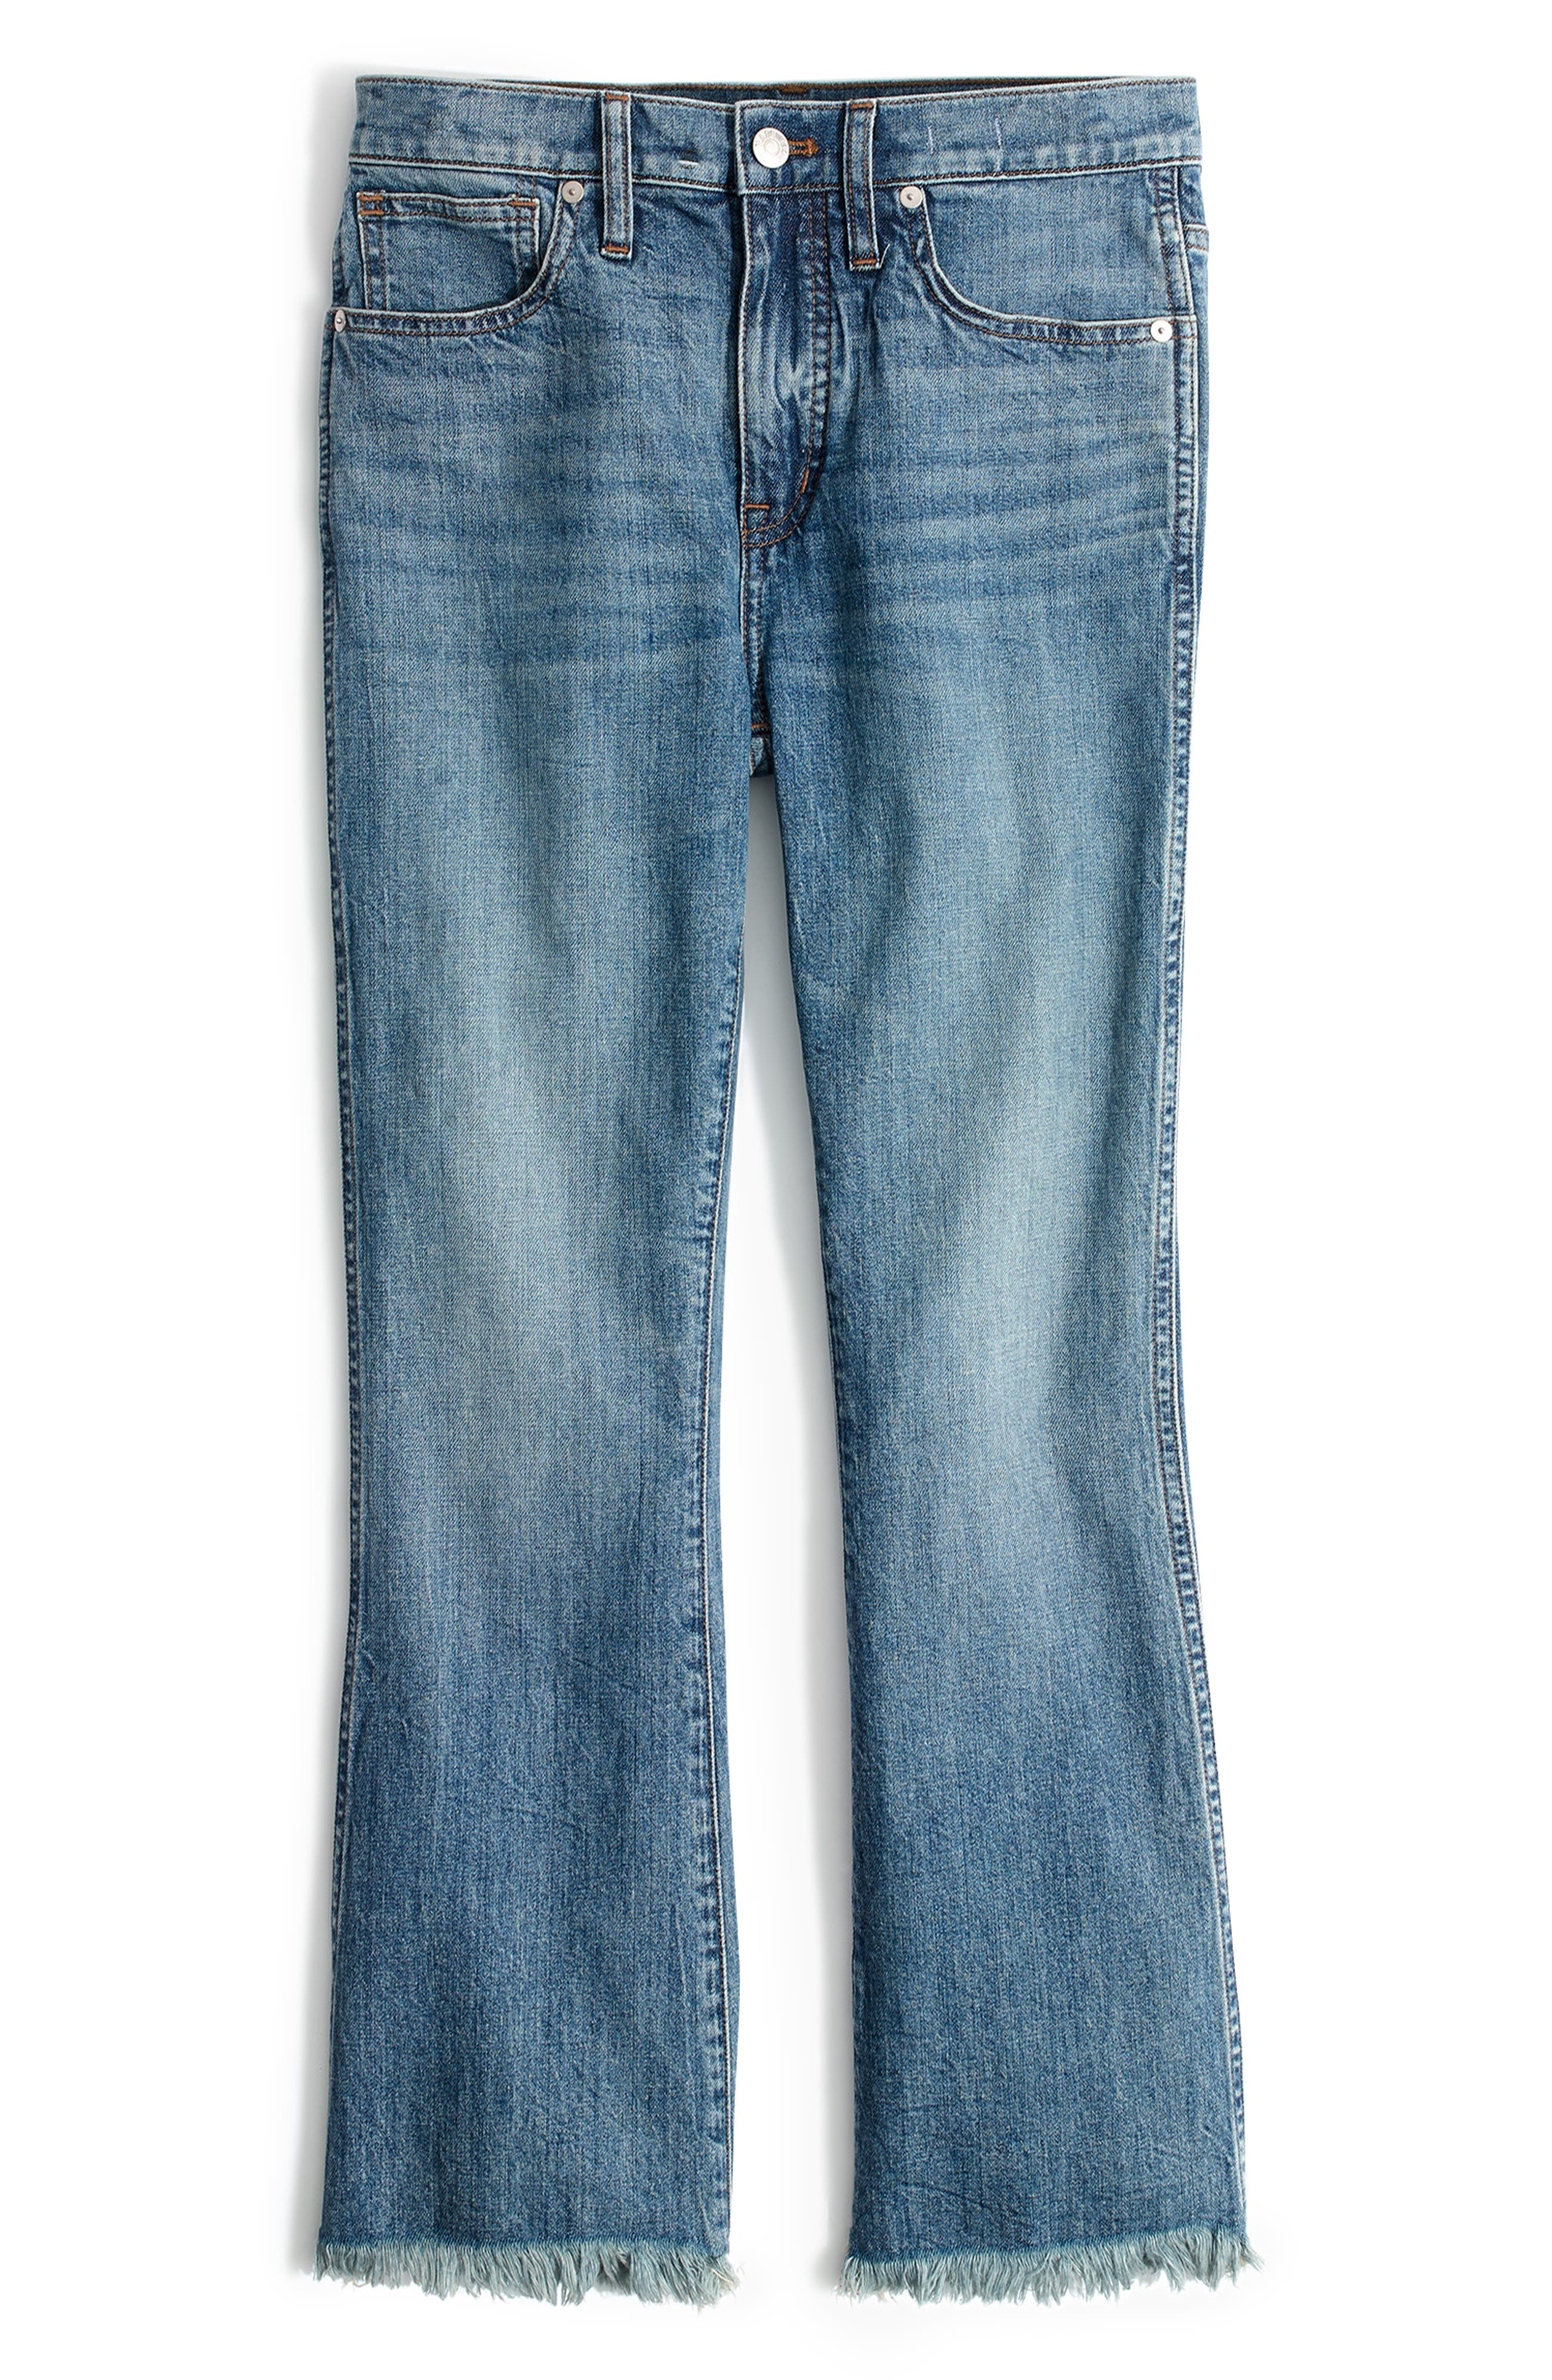 Cali Demi Boot Jeans,                             Alternate thumbnail 6, color,                             HENEY